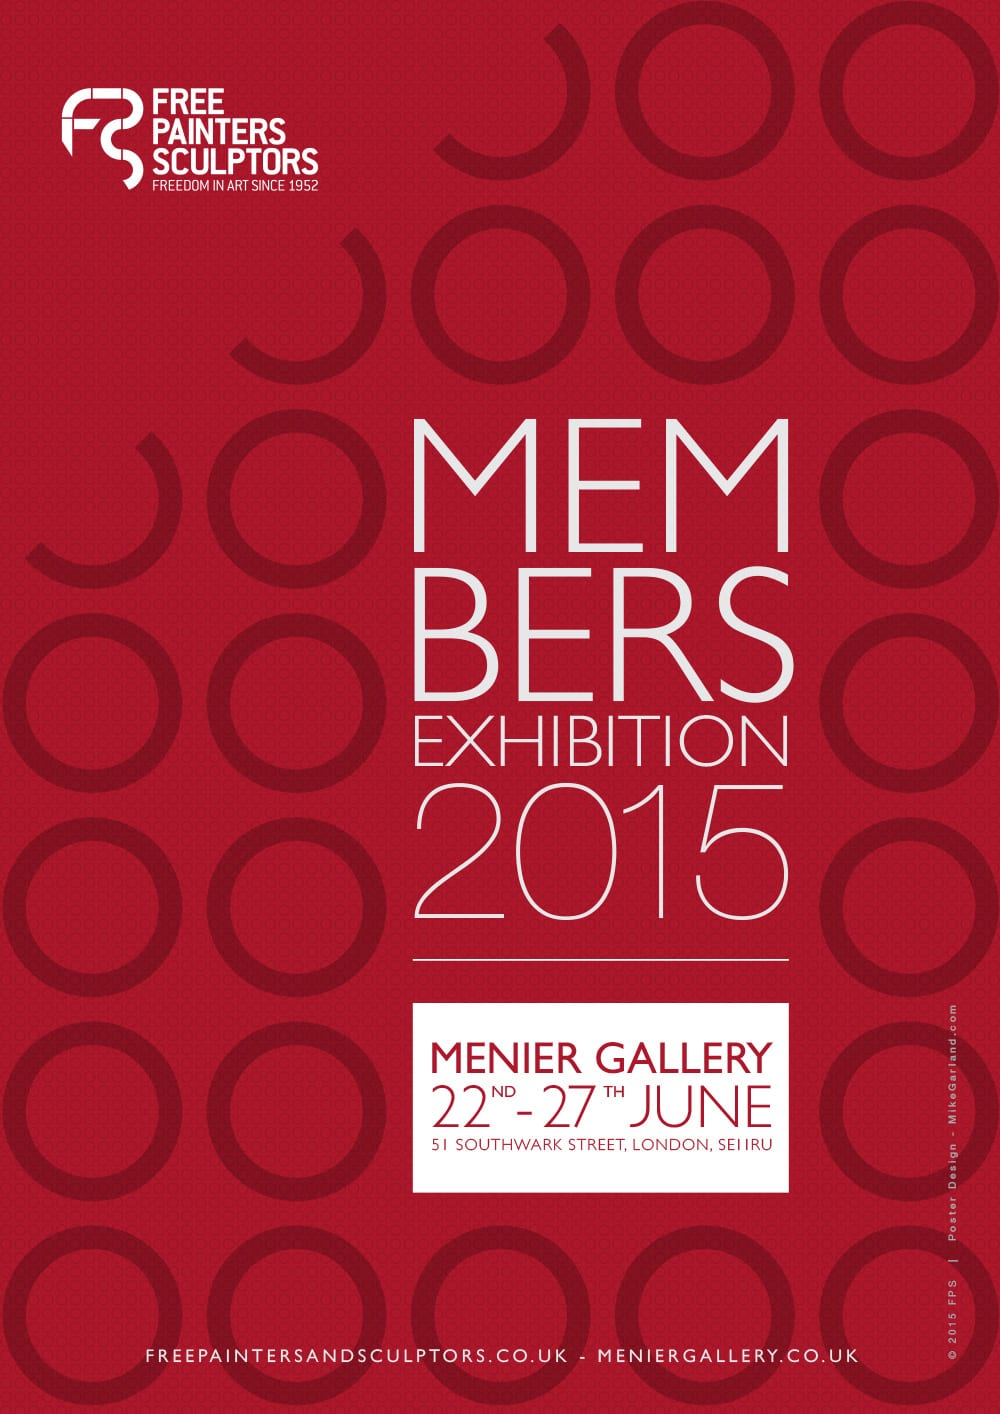 Mike-Garland-Free-Painters-and-Sculptors-Members-Exhibition-Poster-2015